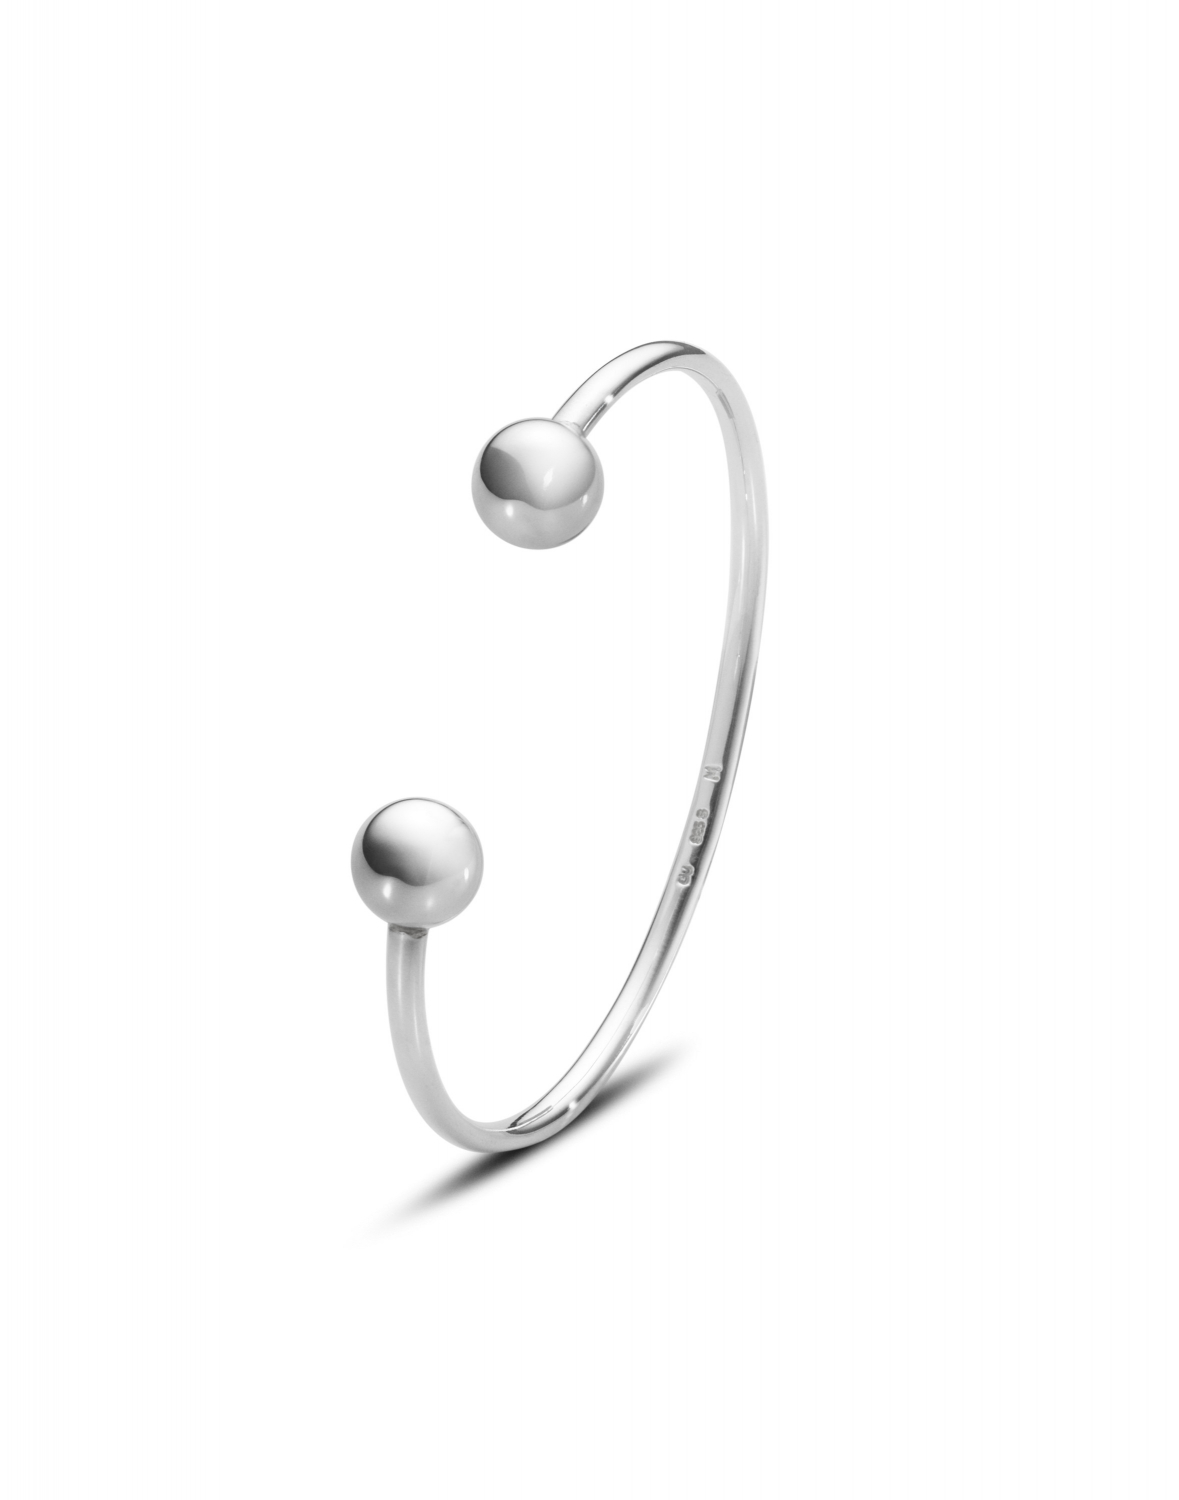 Georg Jensen Moonlight Grapes armring - 3531298 Armring størrelse L